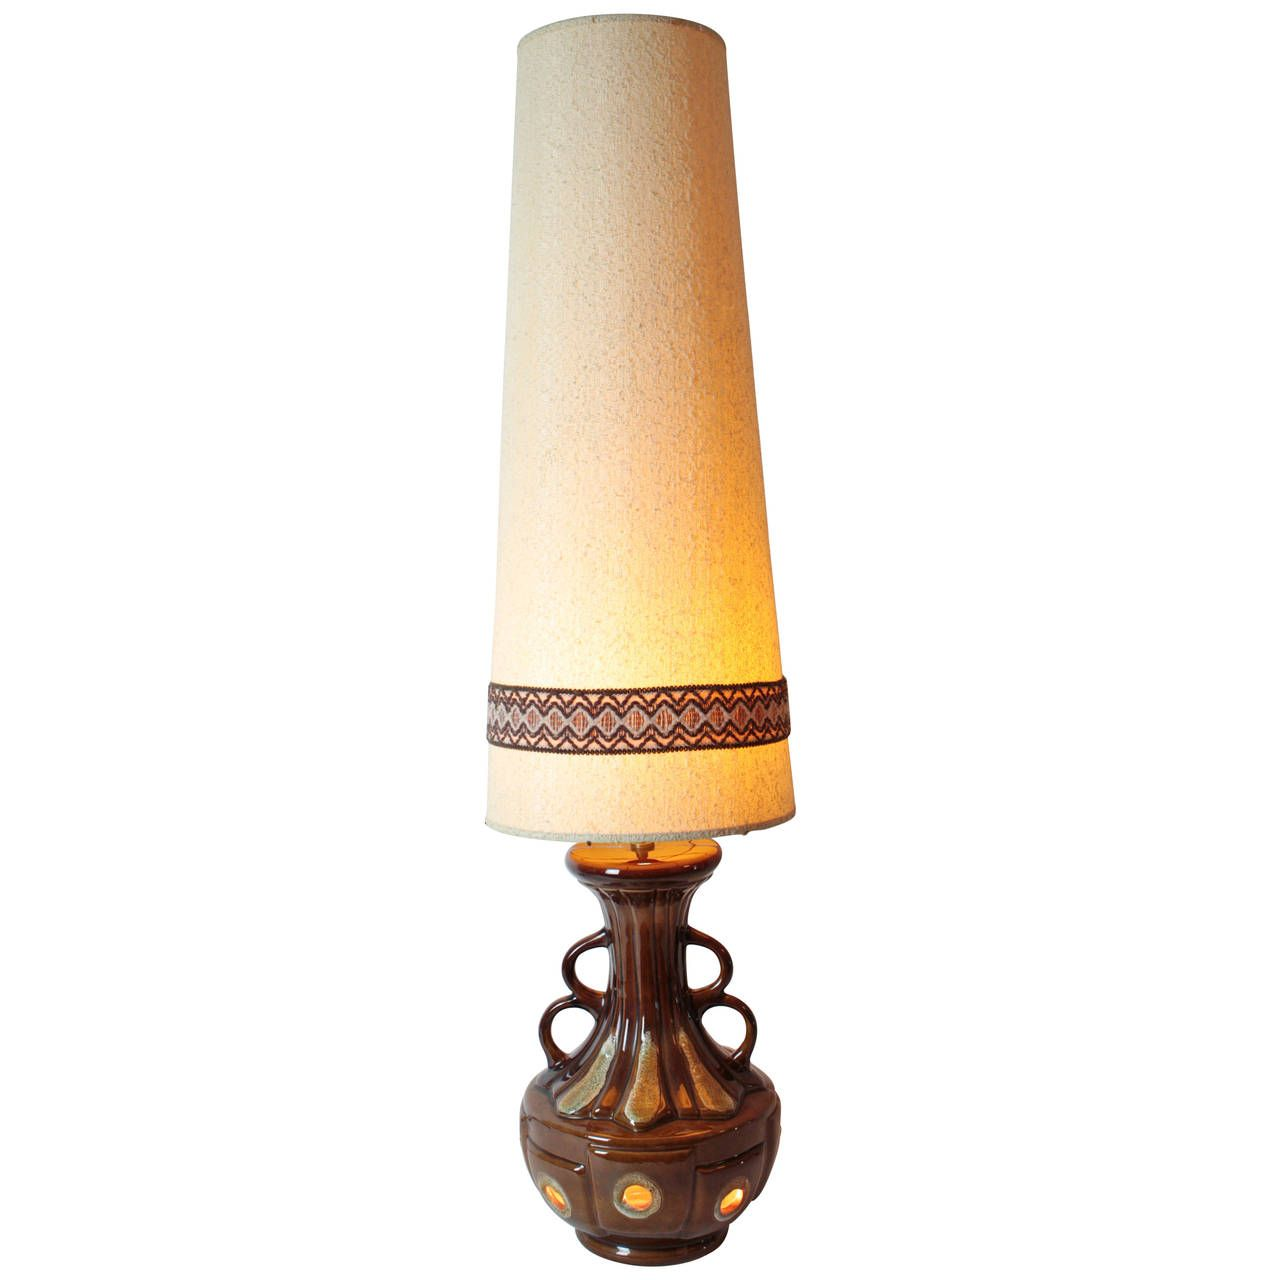 Lava lamp large - Massive Mid Century Fat Lava Pottery Table Lamp With Original Tall Shade